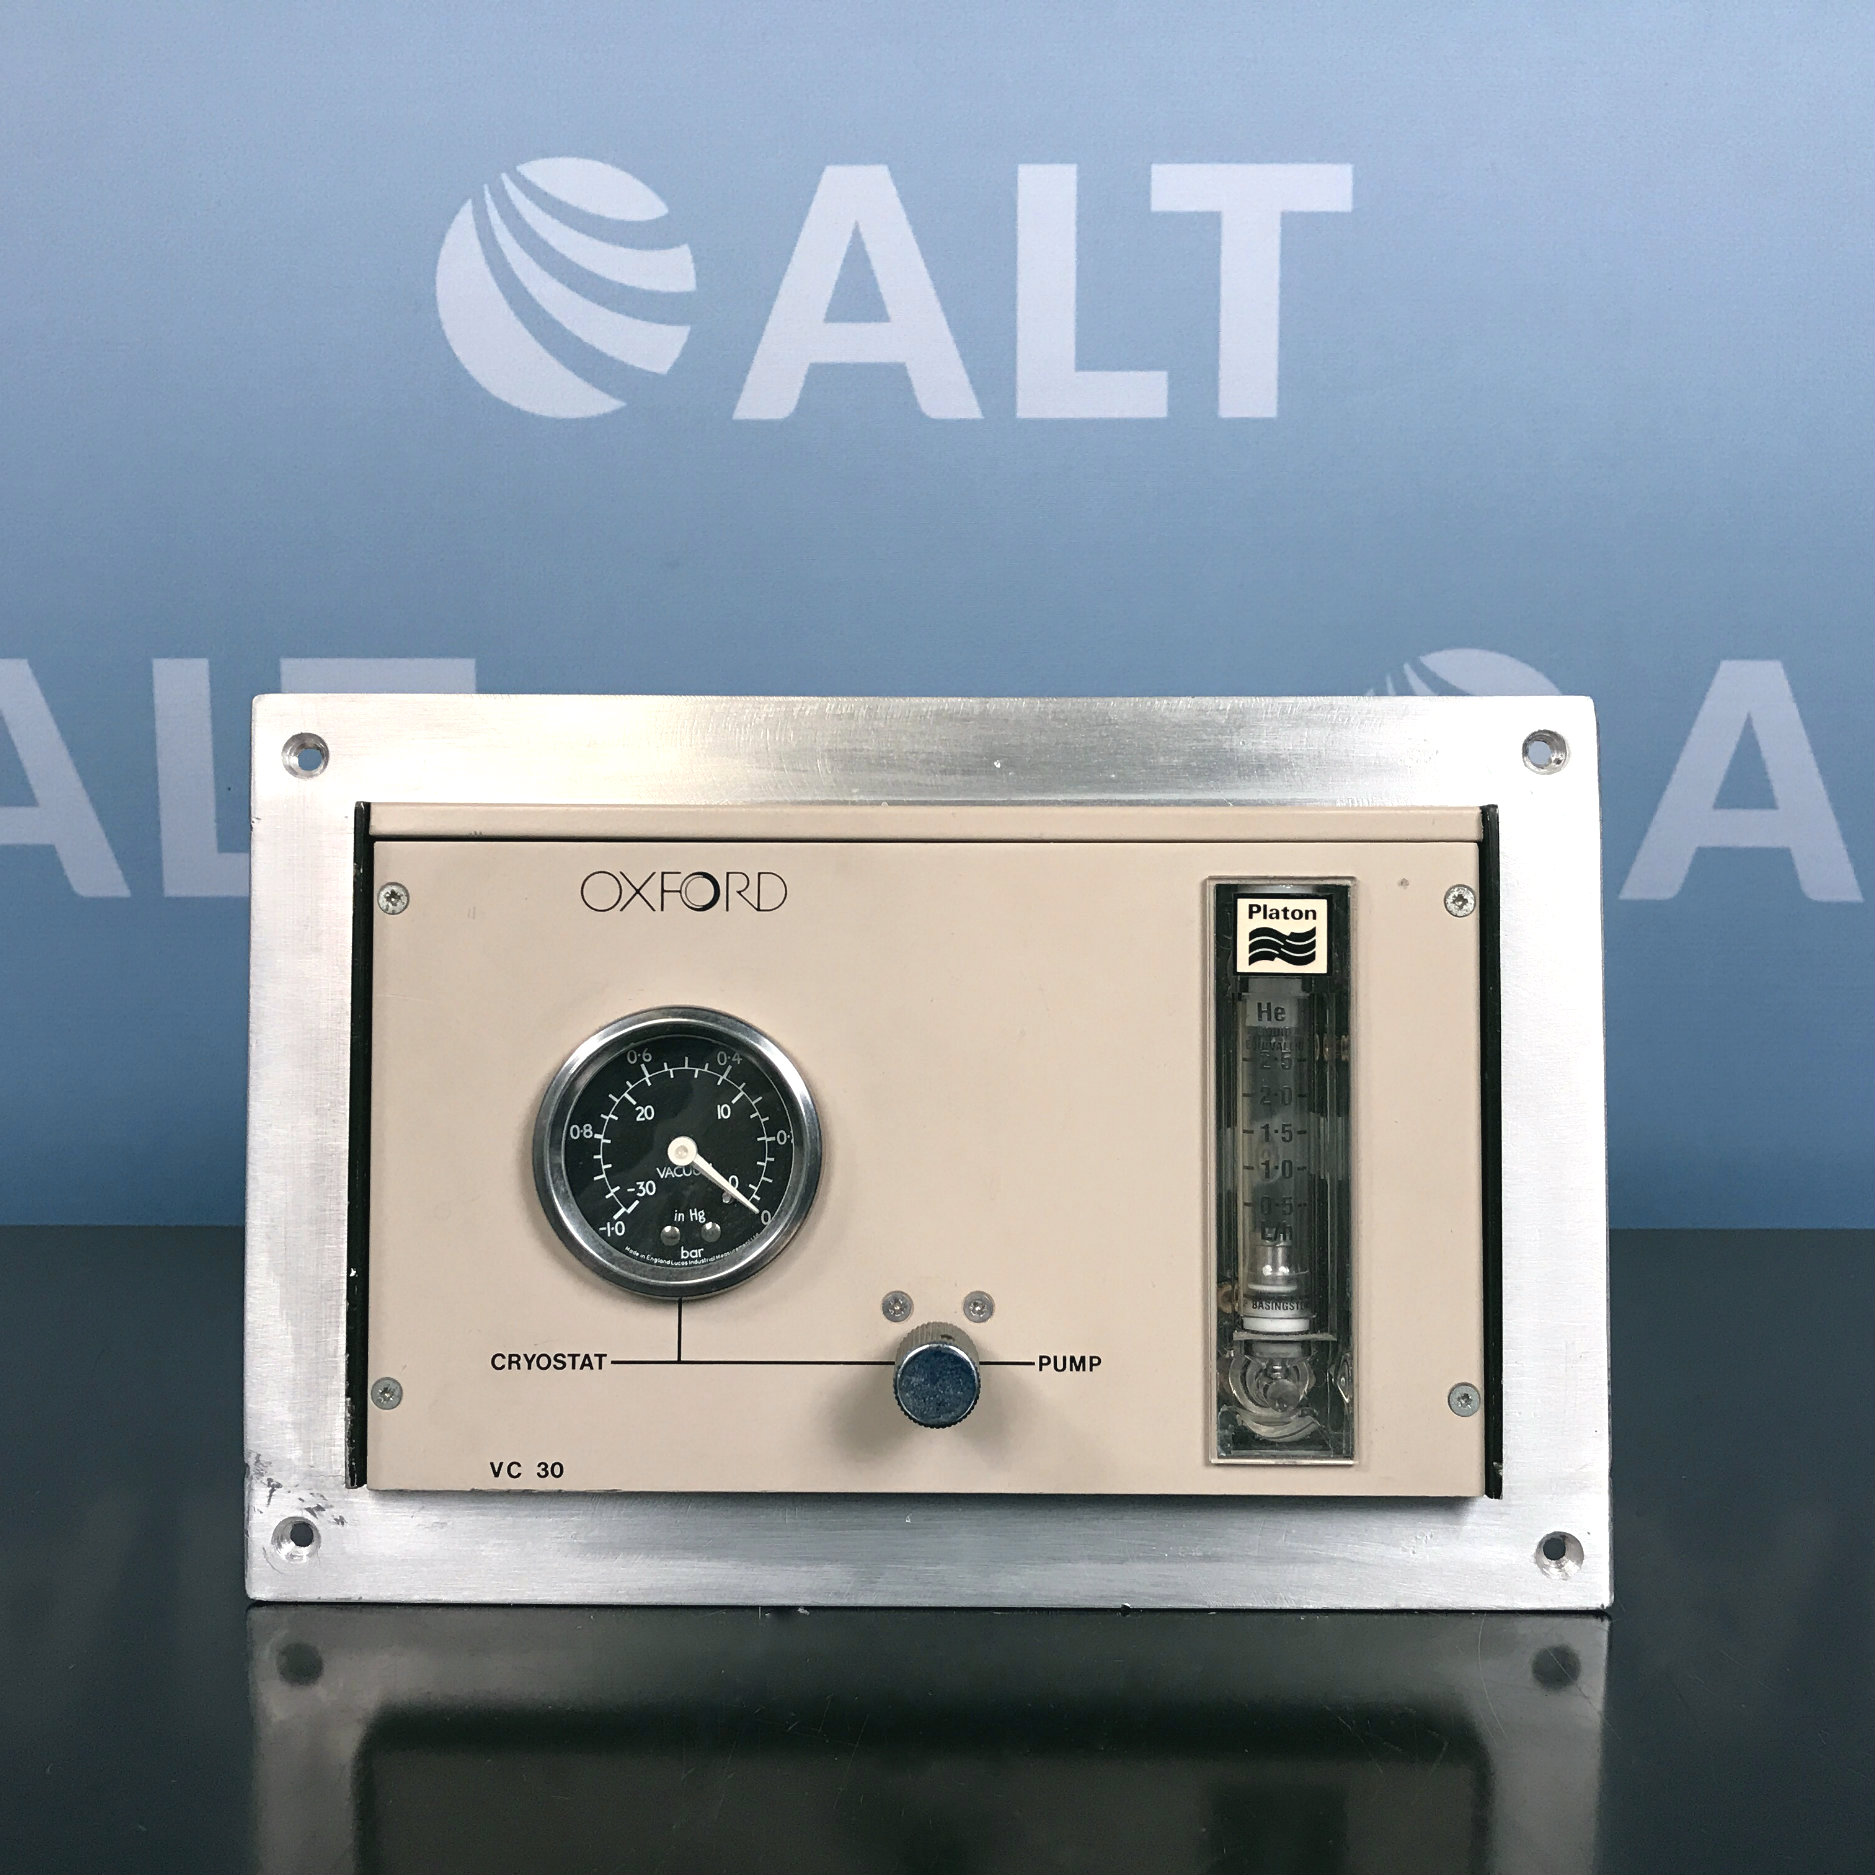 Oxford cryosystems VC30 Crostat Controller Image